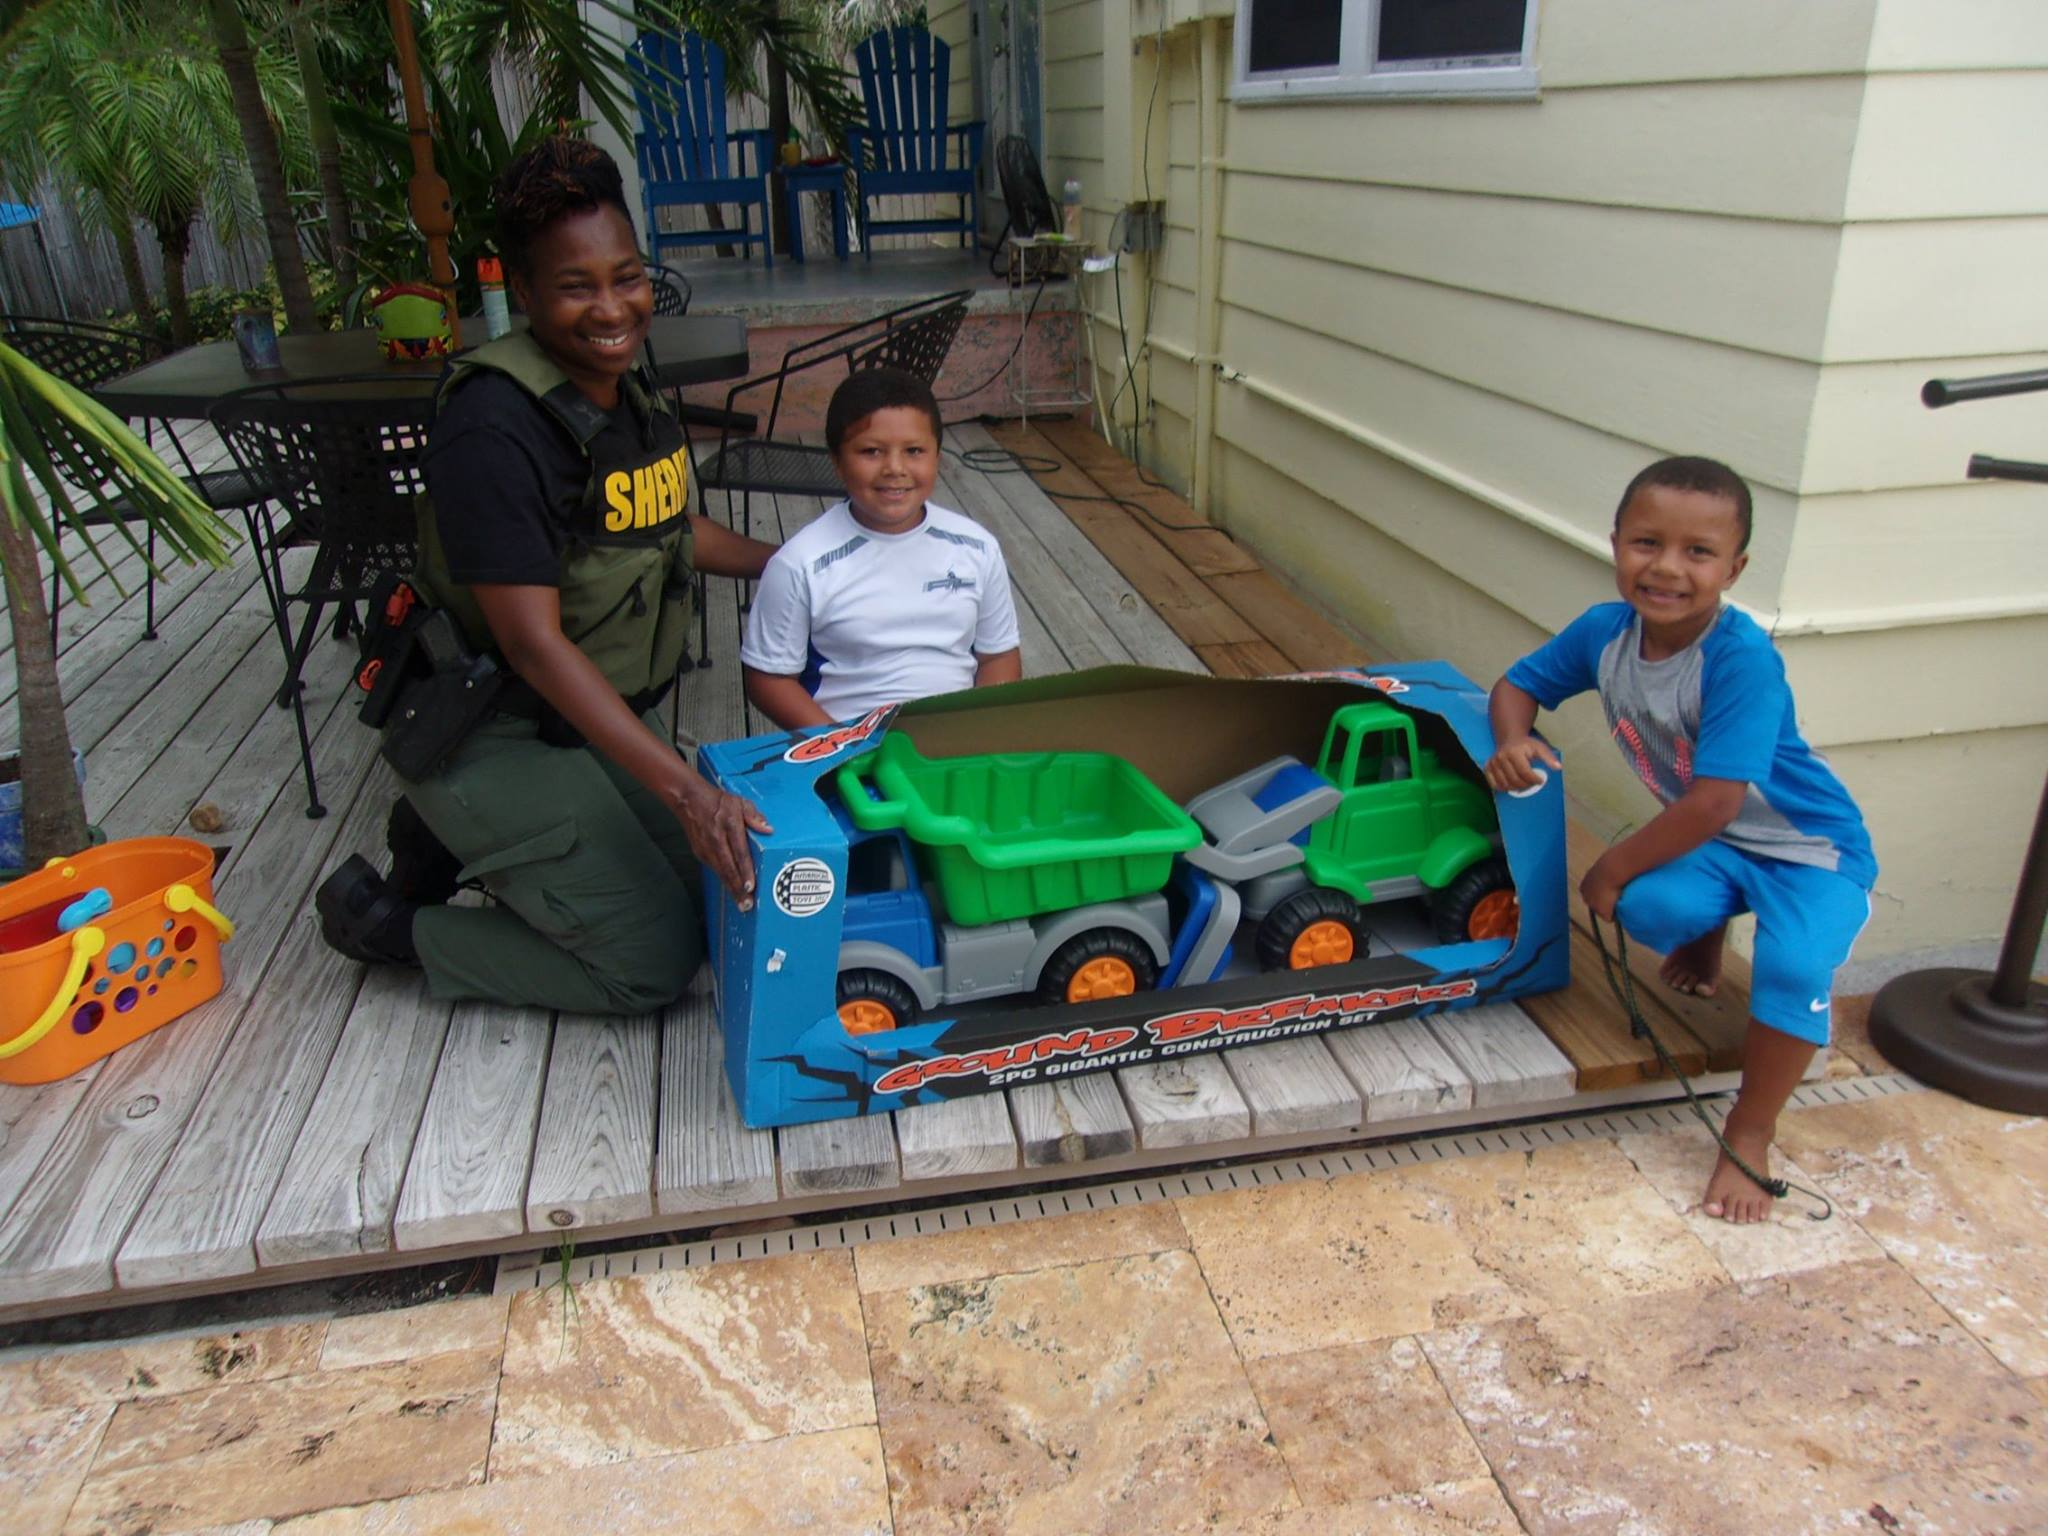 Community Policing Deputy Sherry Baker Mentors Boys